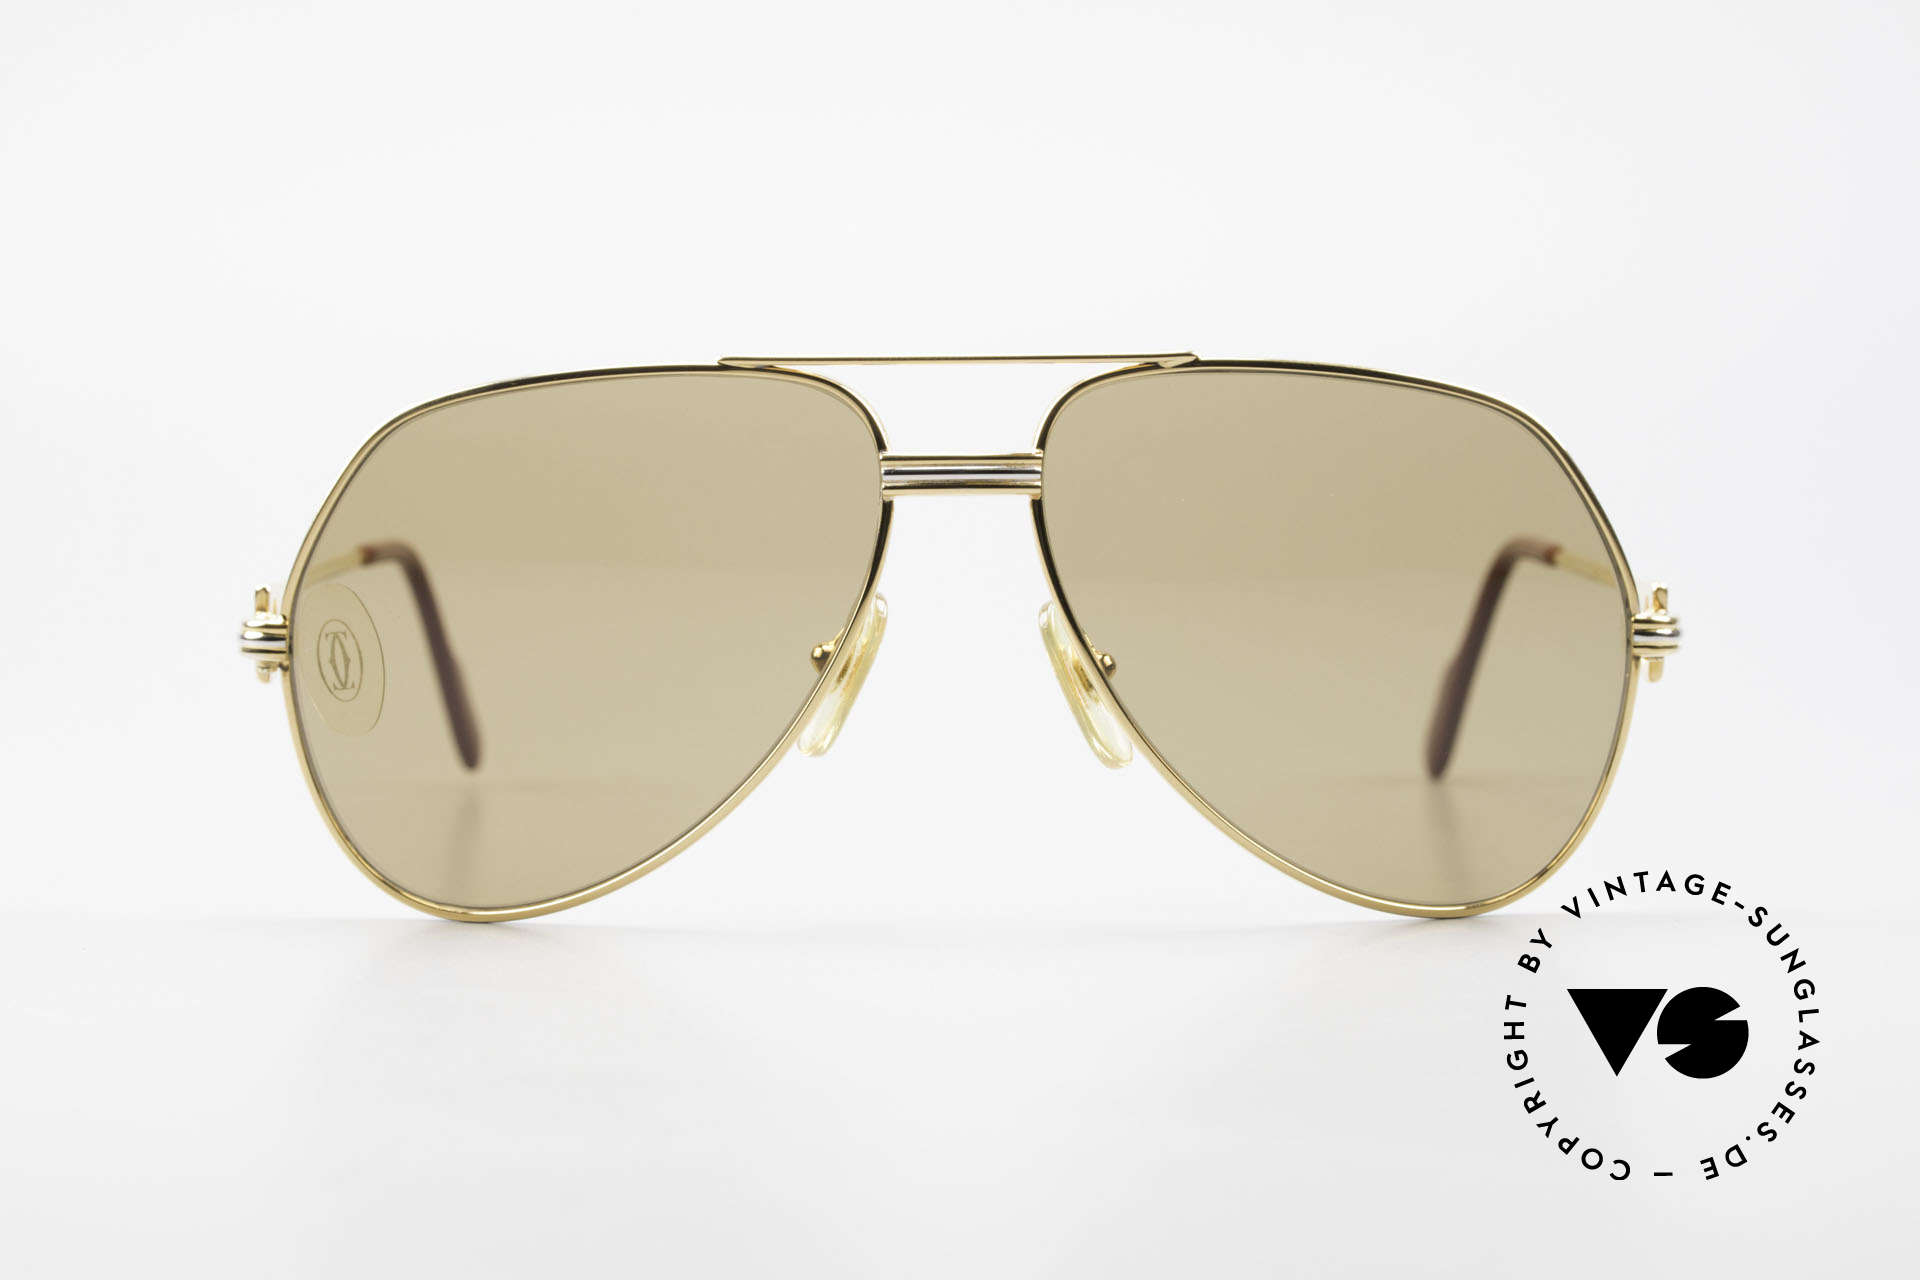 """Cartier Vendome LC - M Mystic Cartier Mineral Lenses, mod. """"Vendome"""" was launched in 1983 & made till 1997, Made for Men"""